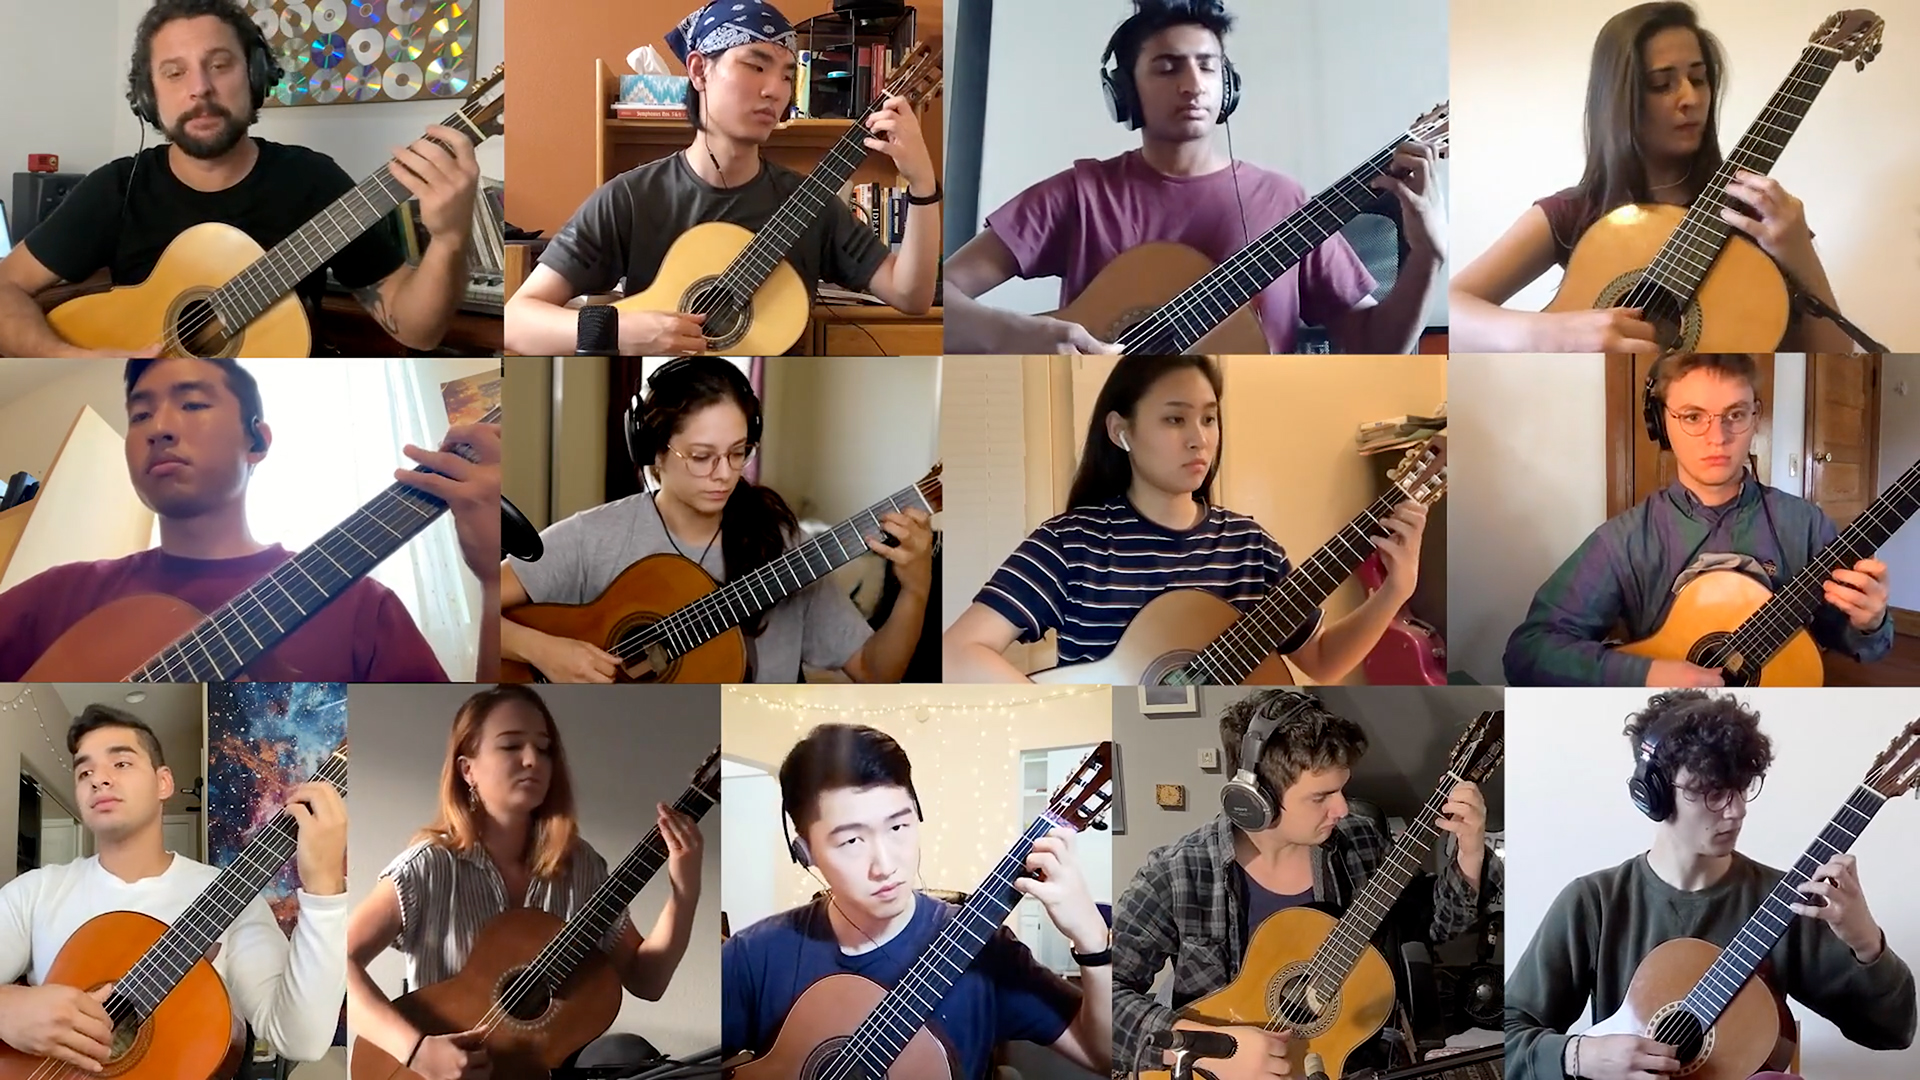 Tiled images of classical guitarist playing together